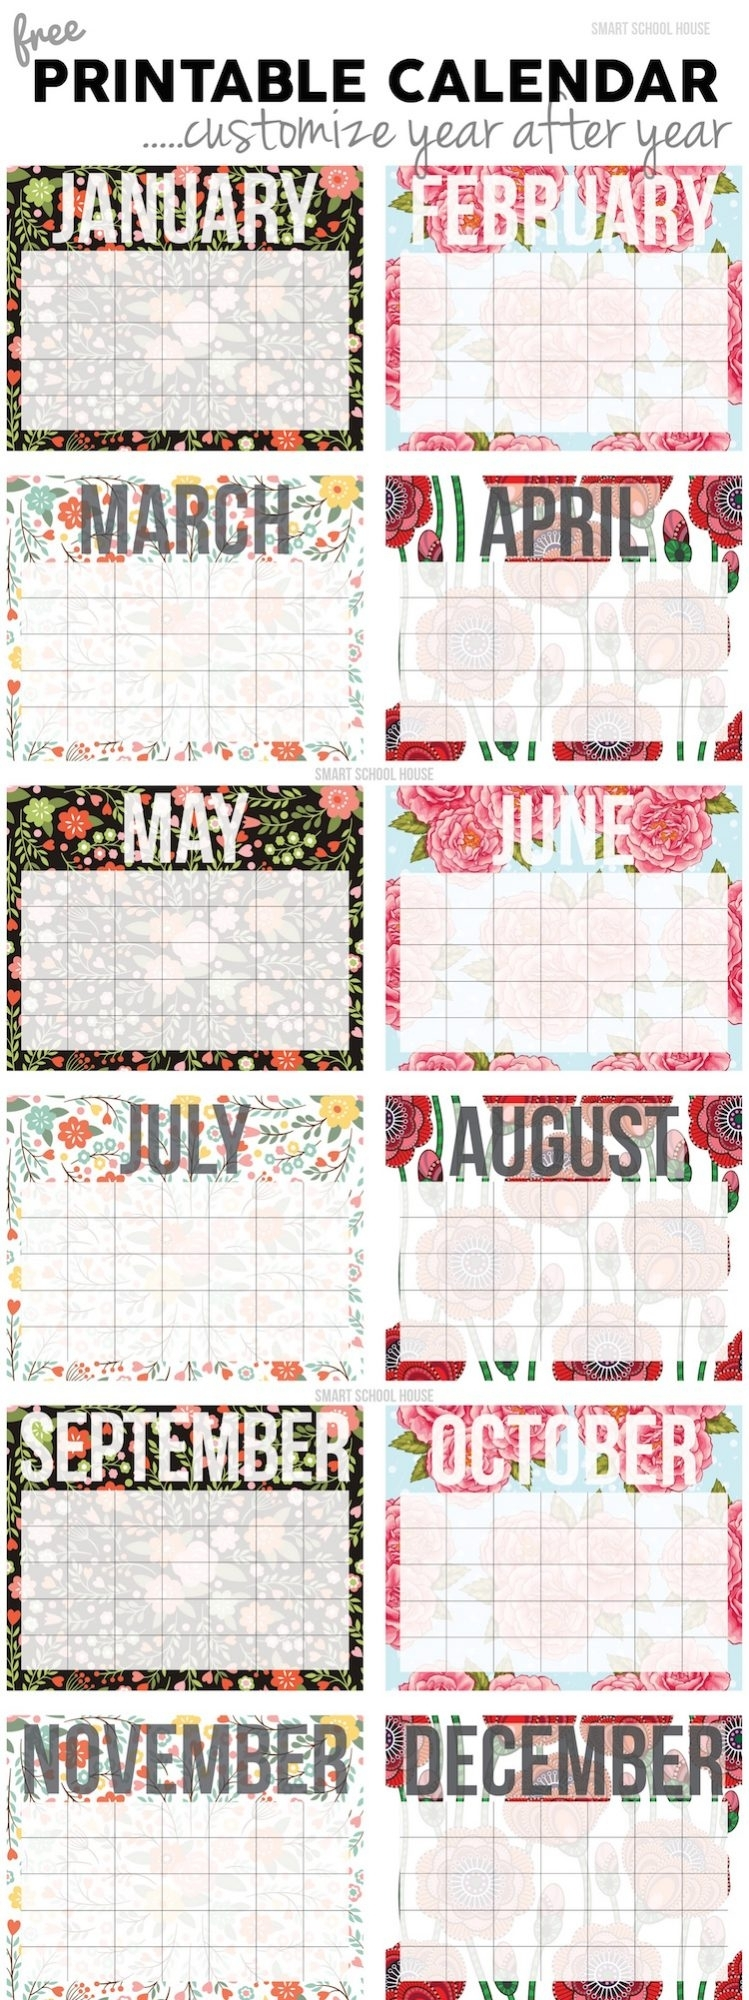 20 Free Printable Calendars For 2020 - Yesmissy with Undated Free Monthly Calendar Printable Free